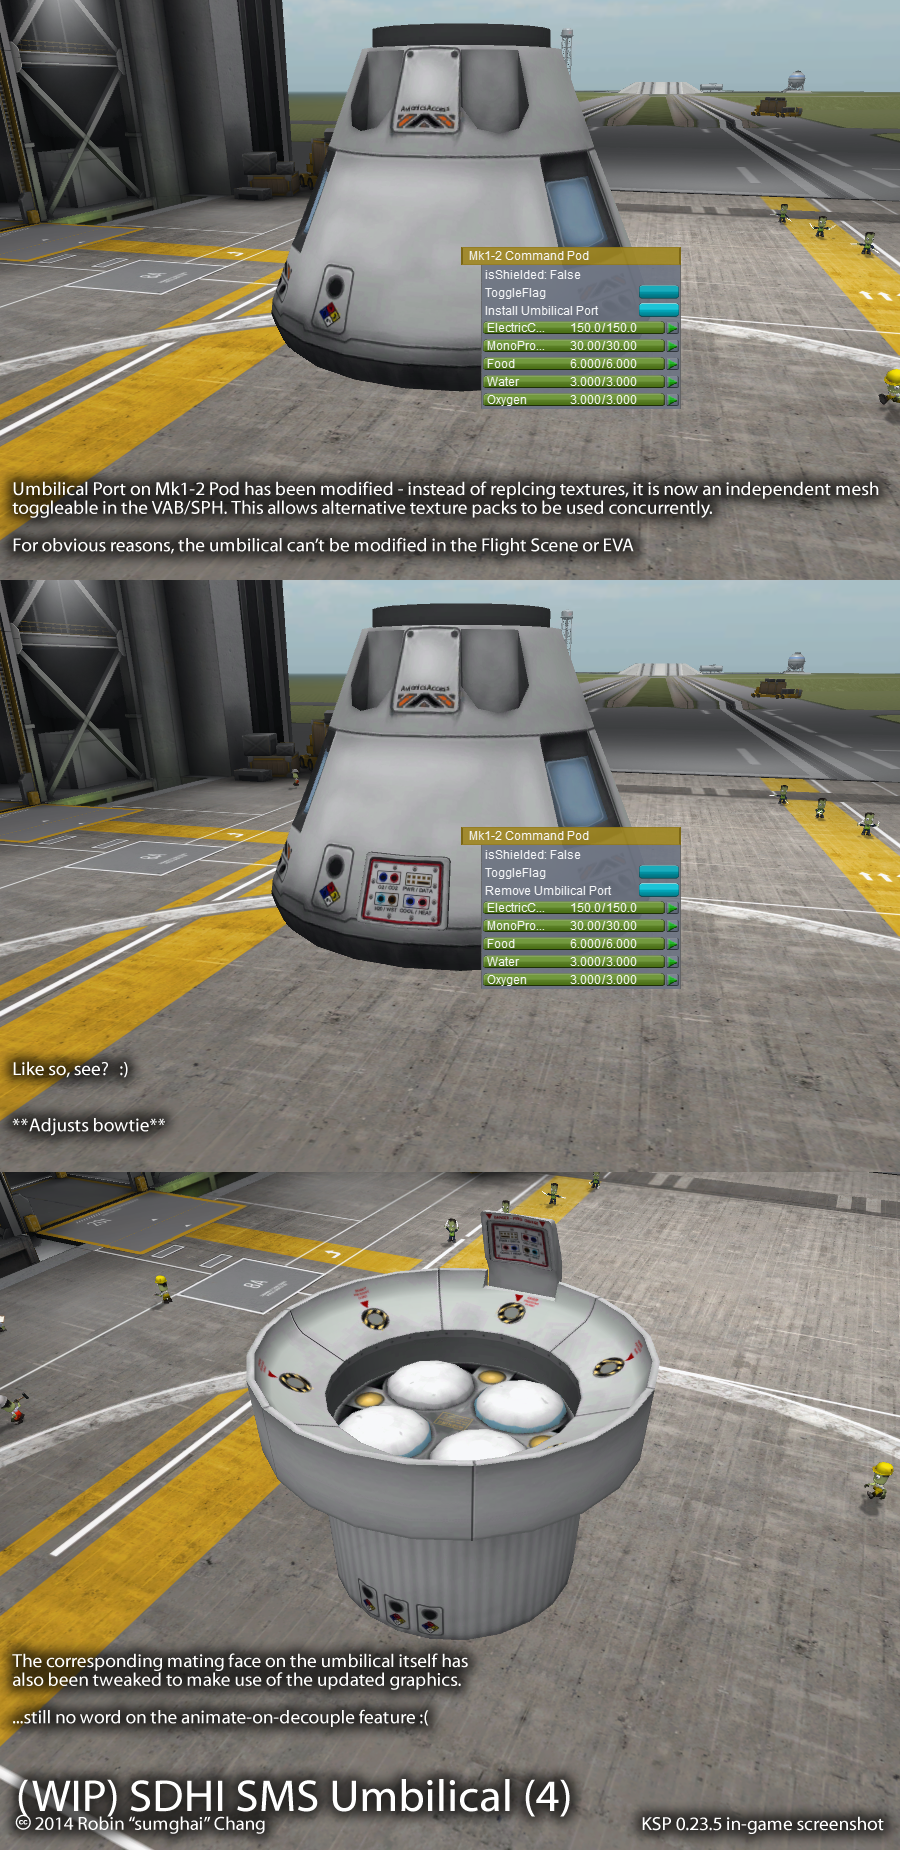 ksp_sdhi_sms_umbilical_wip_9_july_2014_b